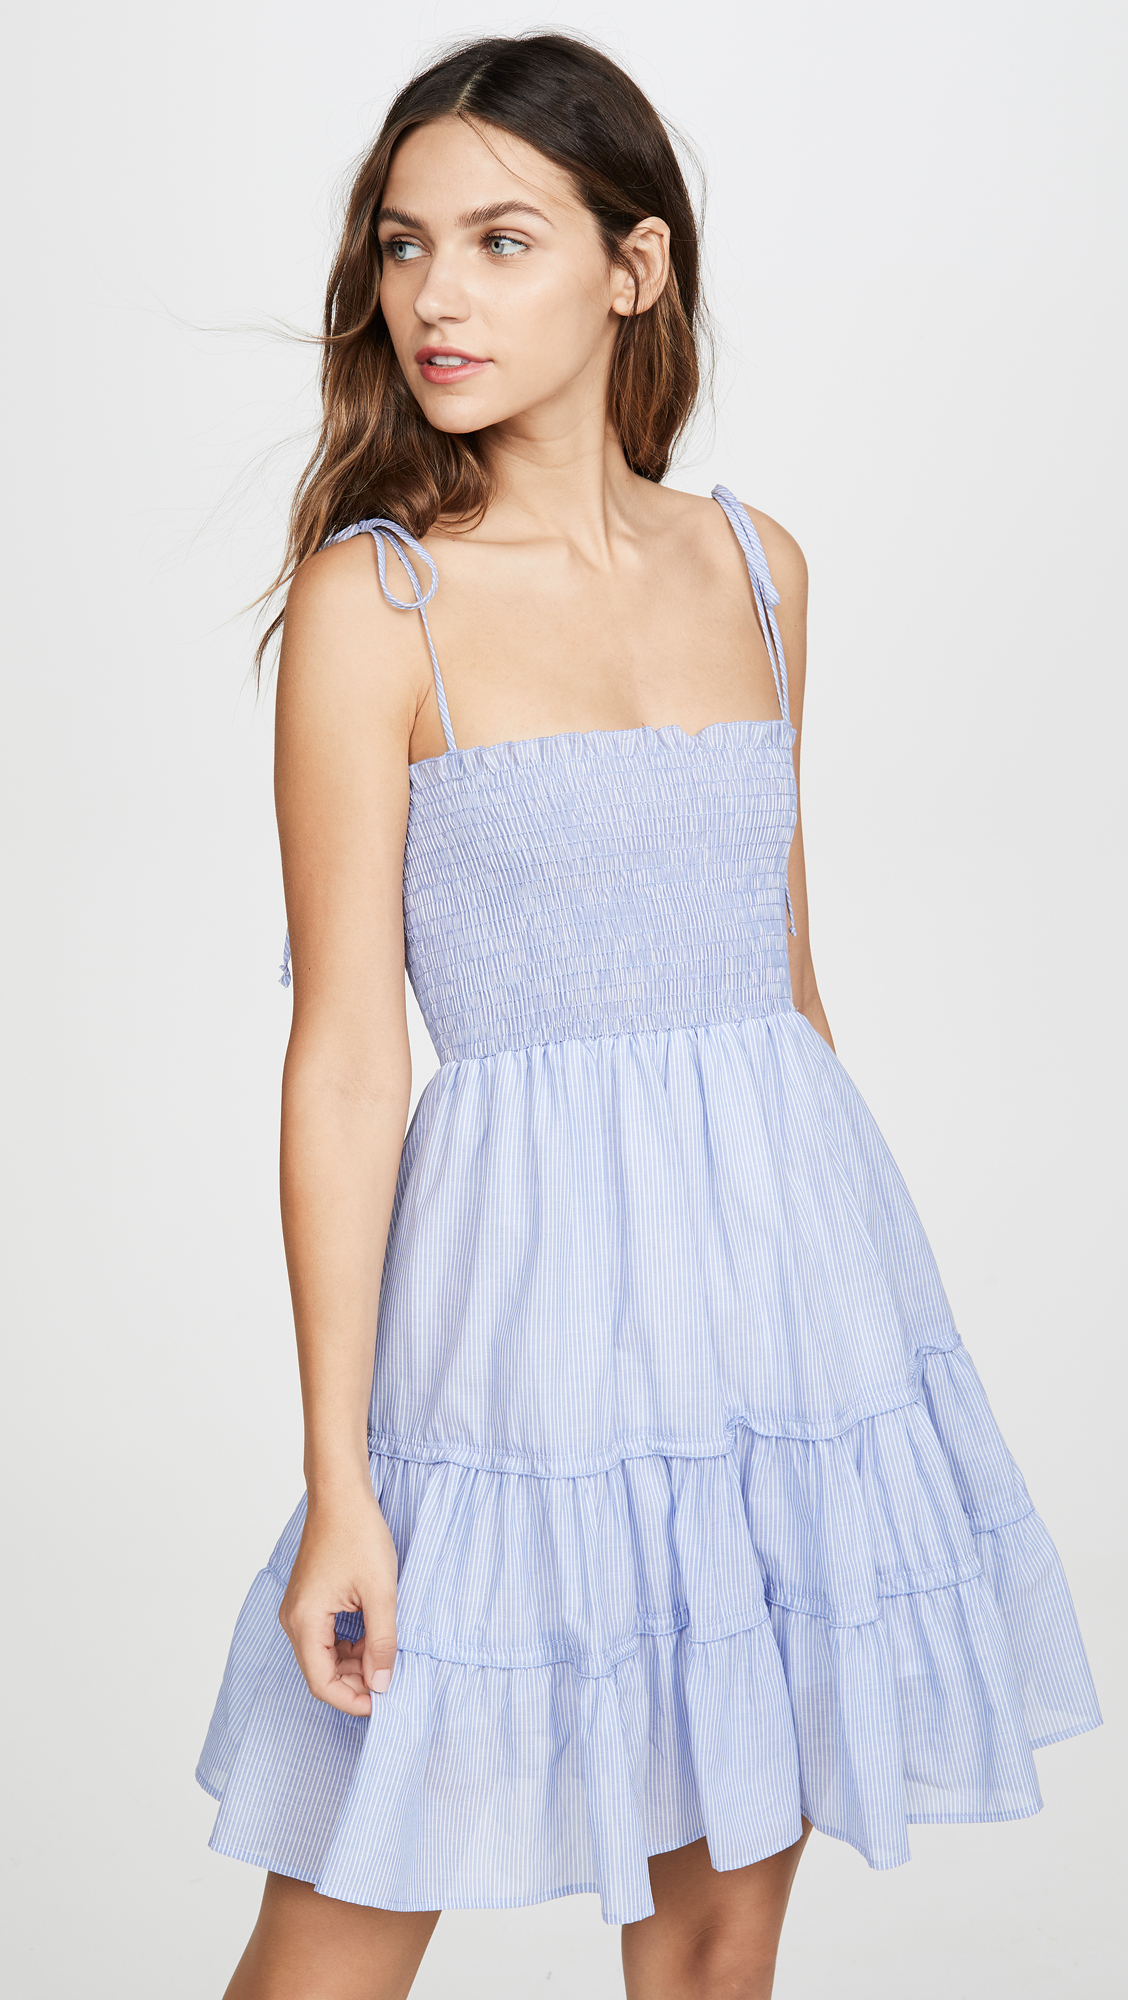 Blue Smocked Bodice Dress